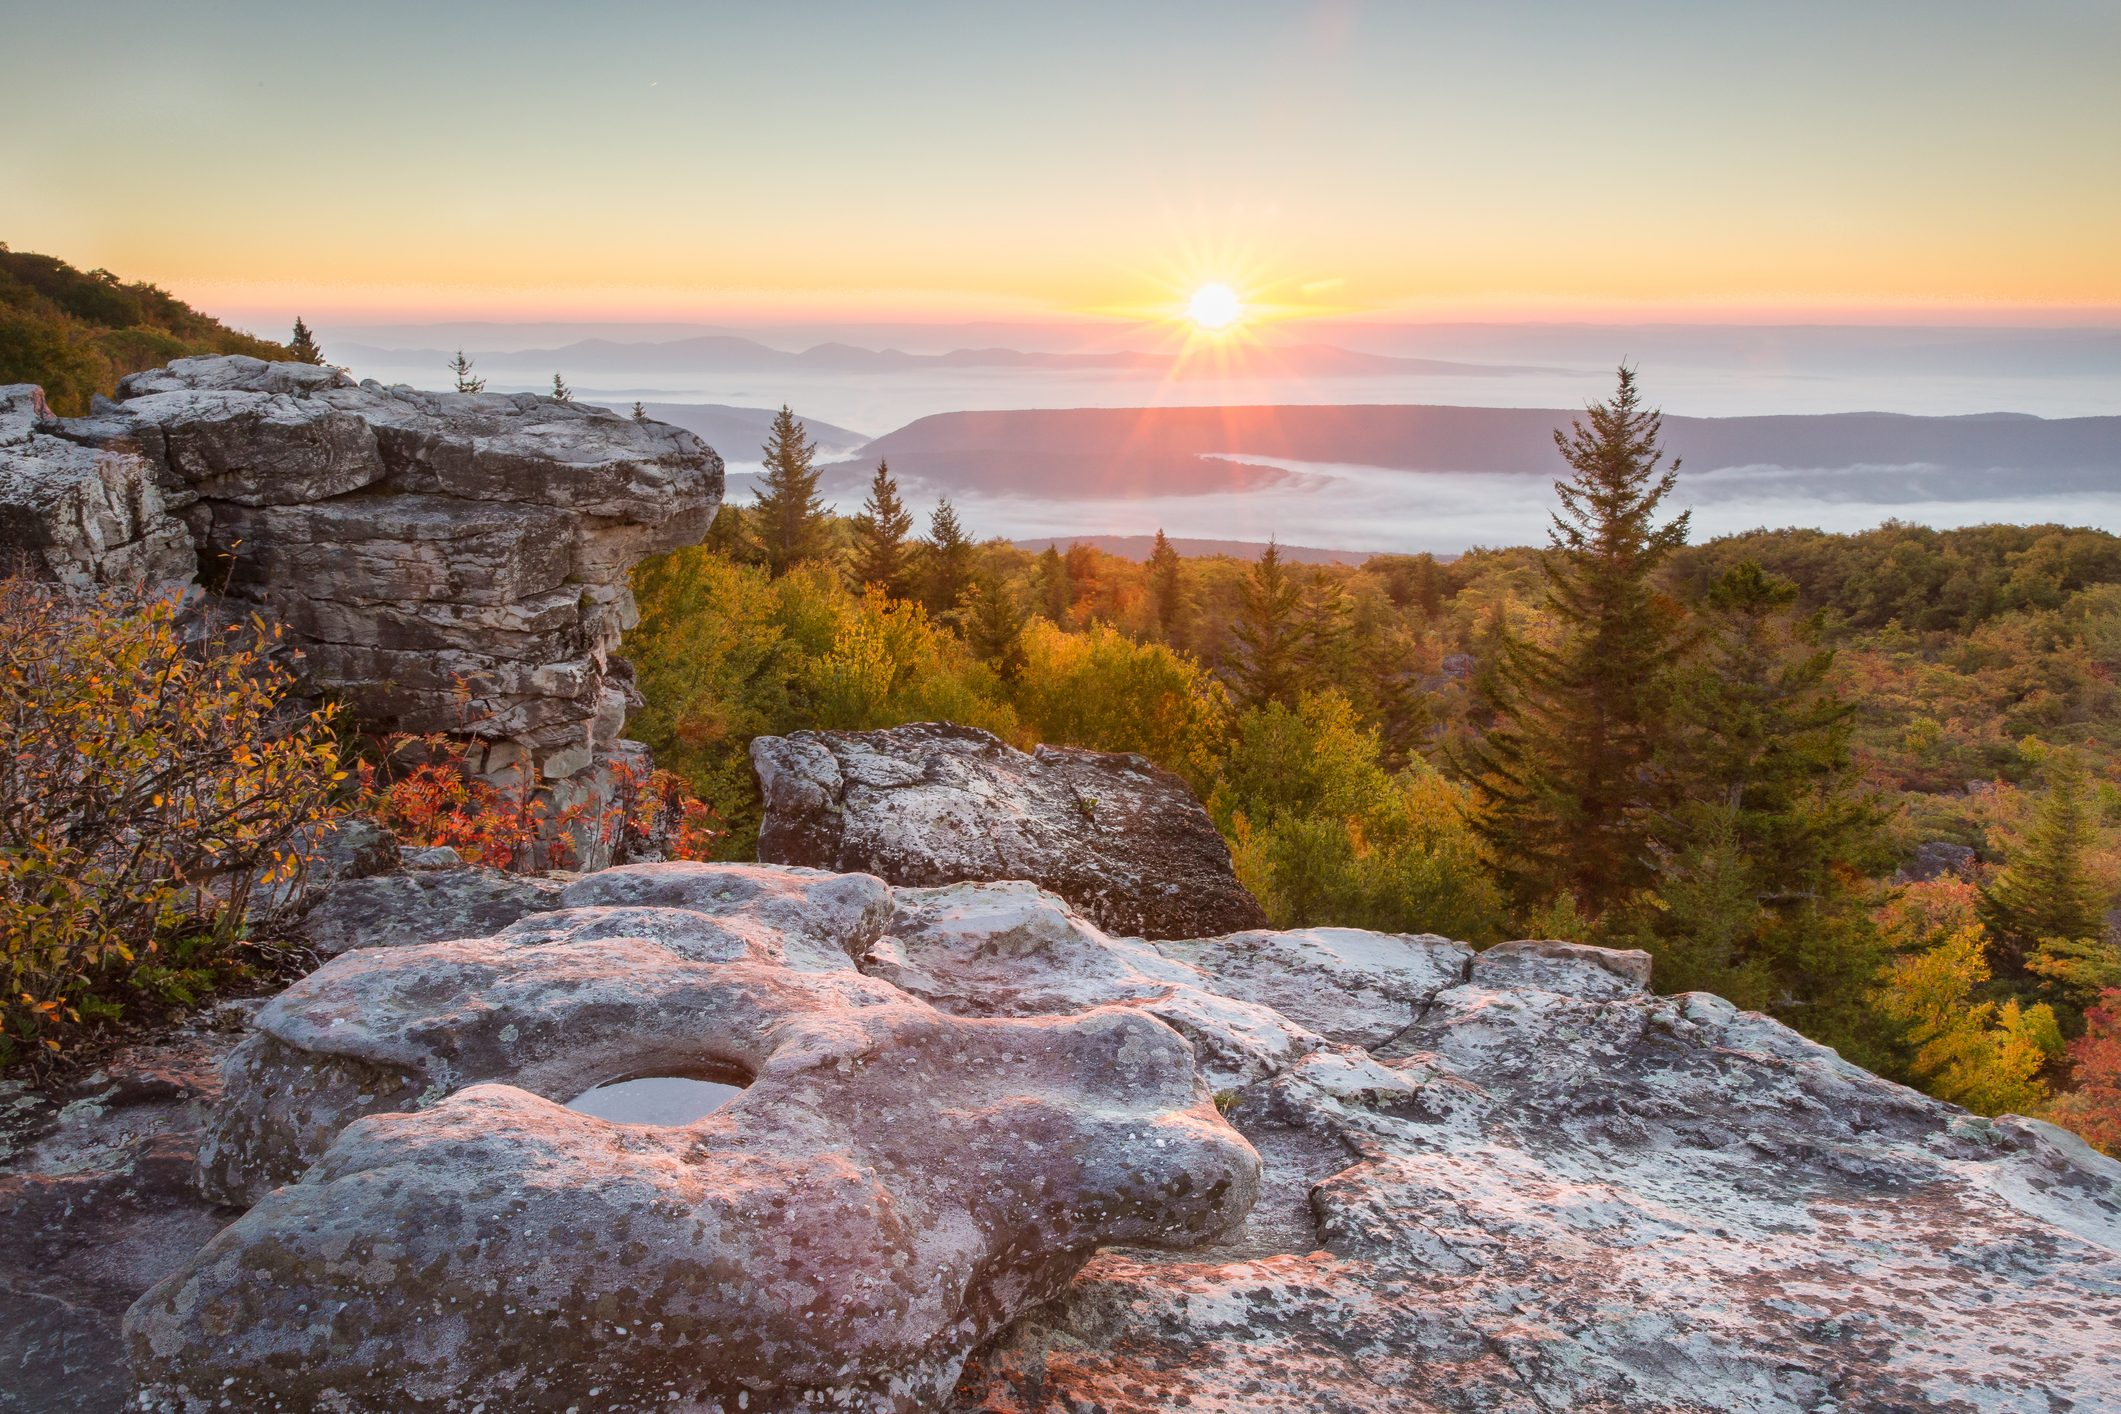 Sunrise at west Virginia's Dolly Sods Wilderness and Recreation Area